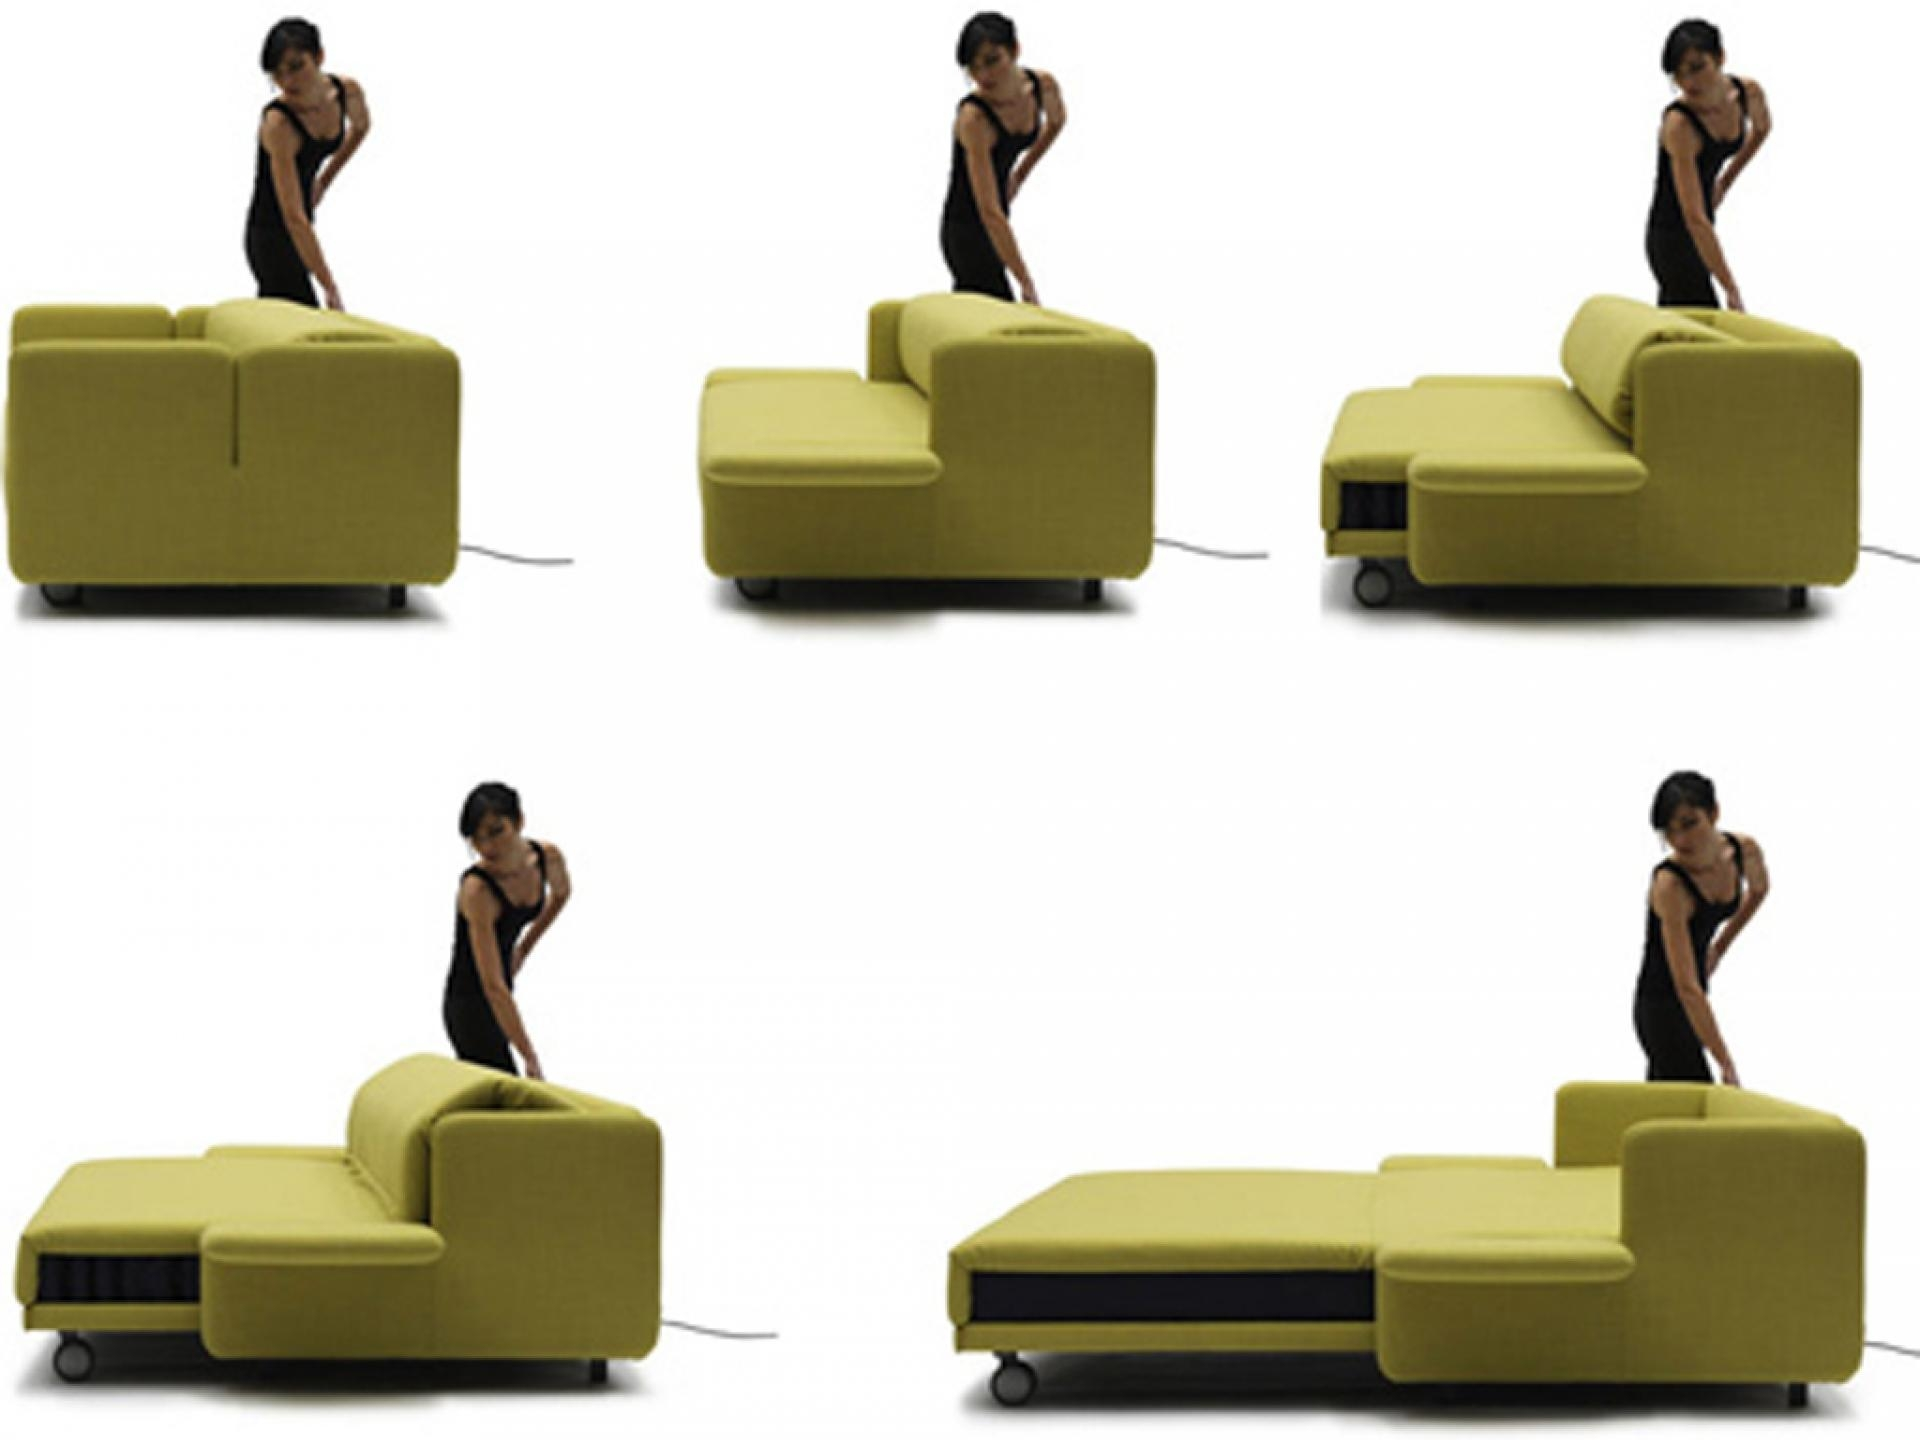 Small Scale Sofas Uk | Tehranmix Decoration Intended For Small Scale Sofas (View 20 of 20)